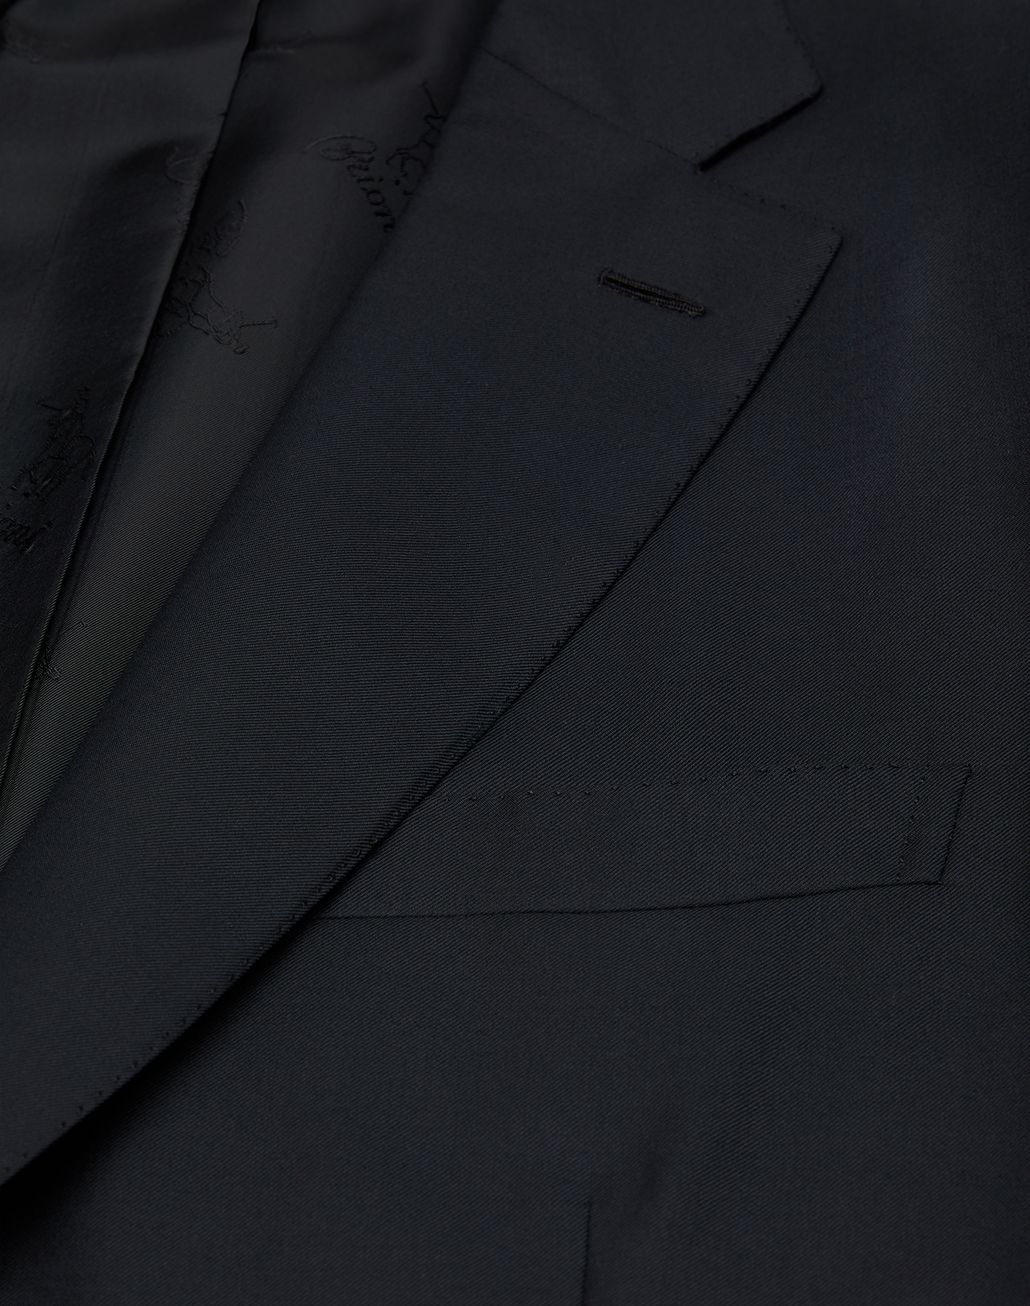 BRIONI Black Brunico Suit Suits & Jackets Man a